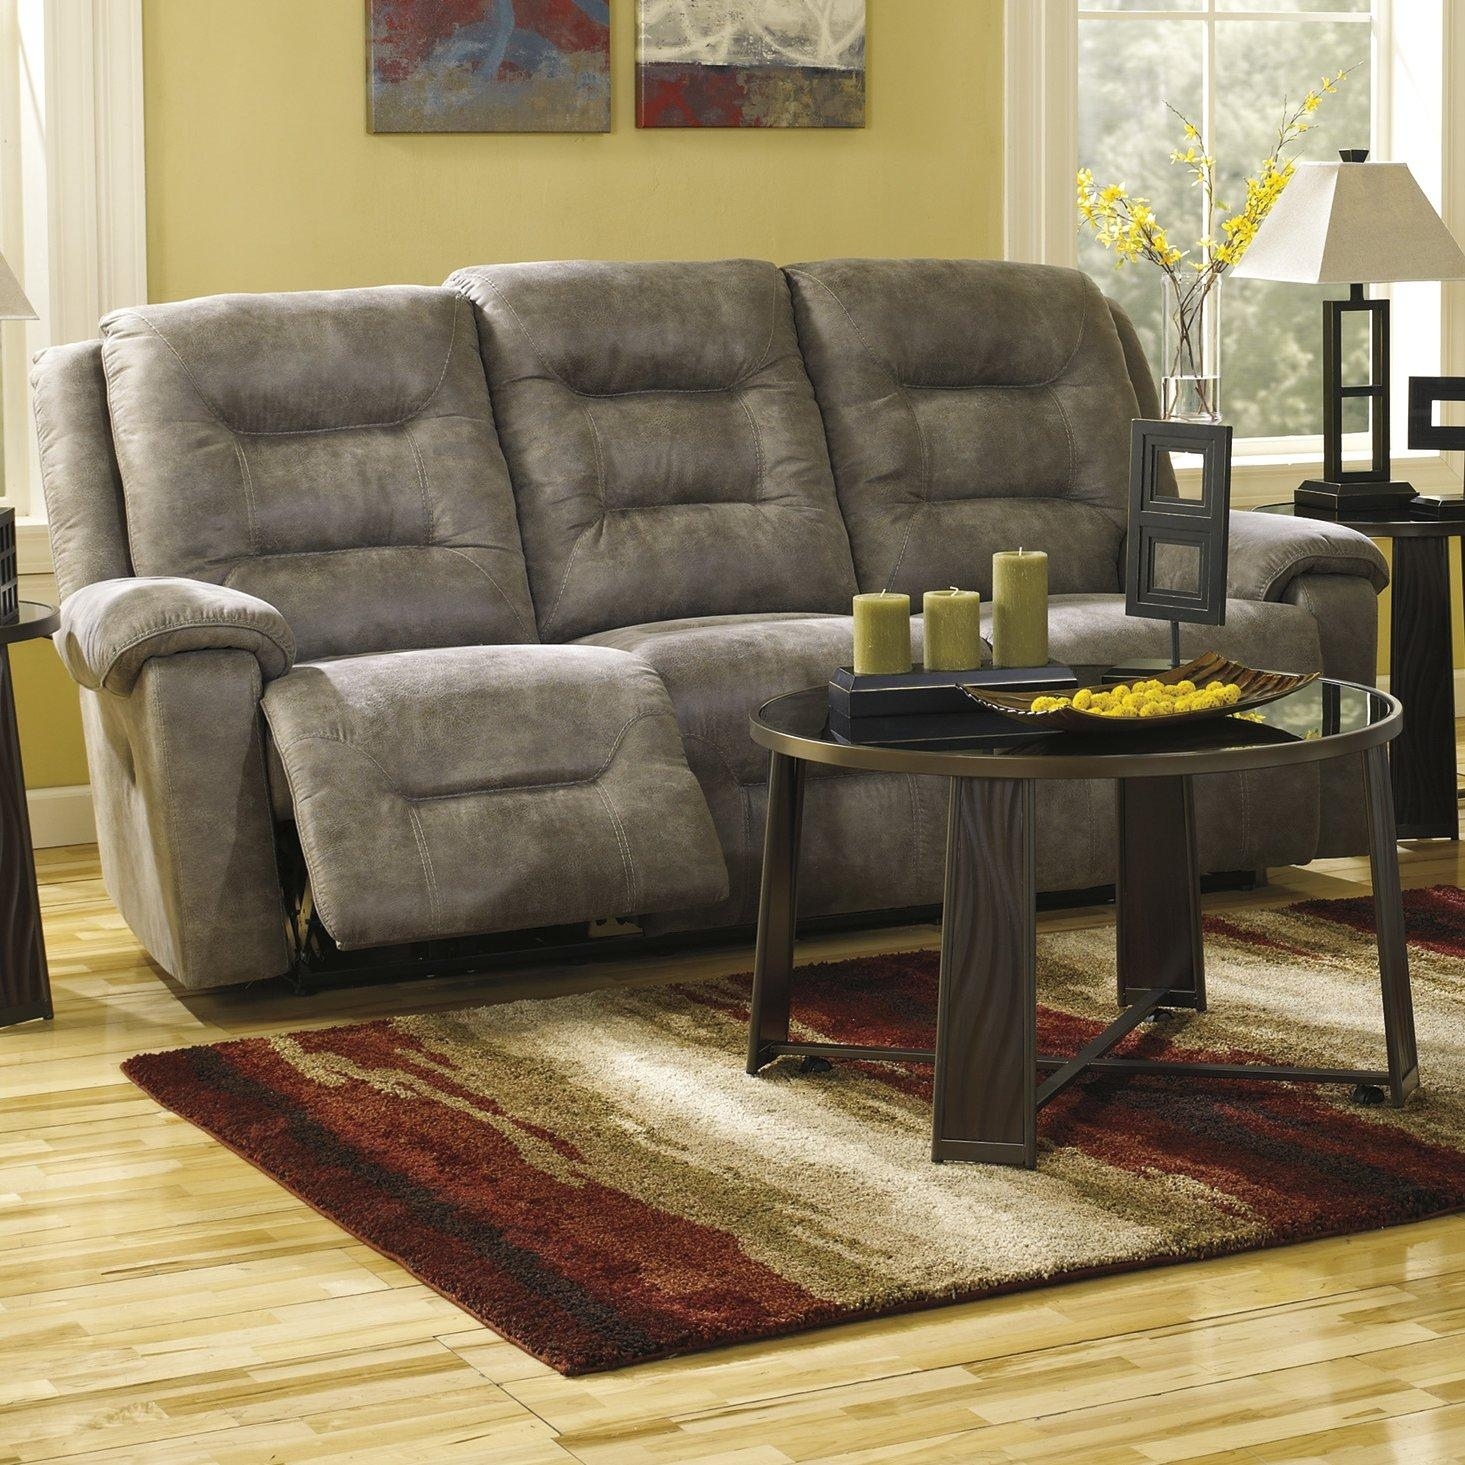 Berkline Sofa With Design Hd Images 8138 | Kengire In Berkline Sofa (Image 6 of 20)